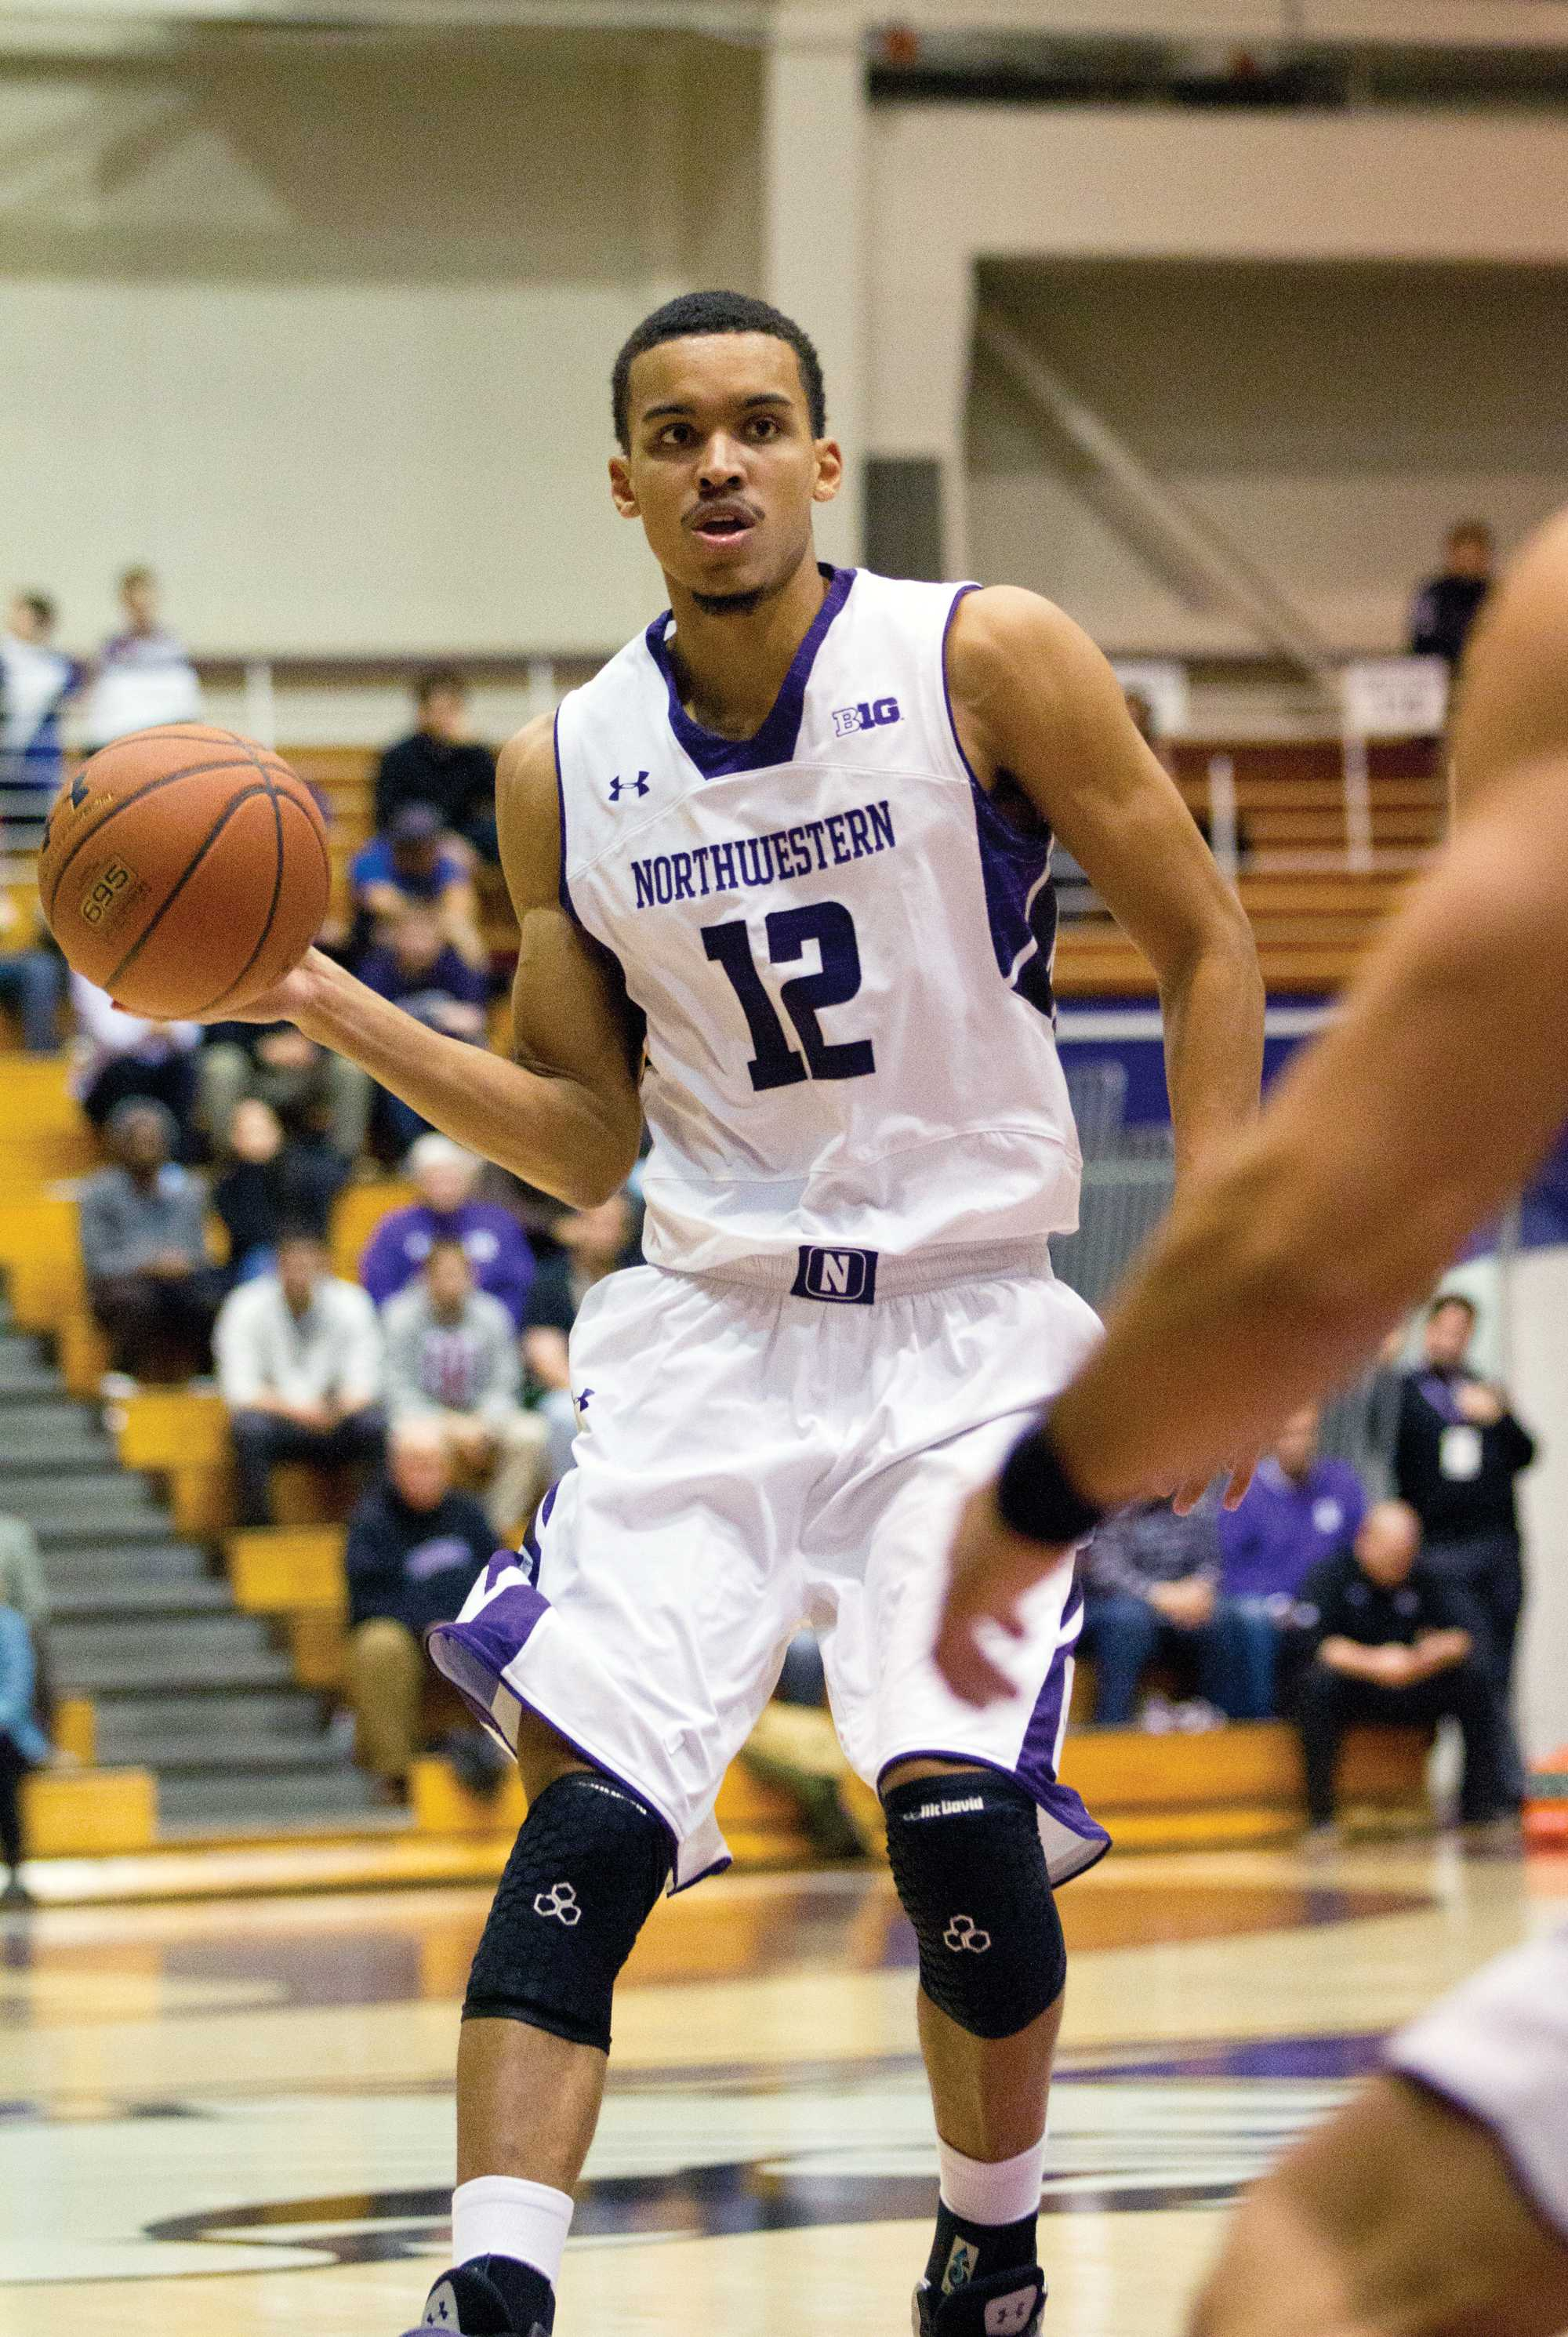 Northwestern forward Jared Swopshire scored 22 points and chipped in 6 rebounds in the Wildcats' win over the Delta Devils on Thursday. Swopshire transferred from Louisville in the offseason and figures to play major minutes for NU this season.